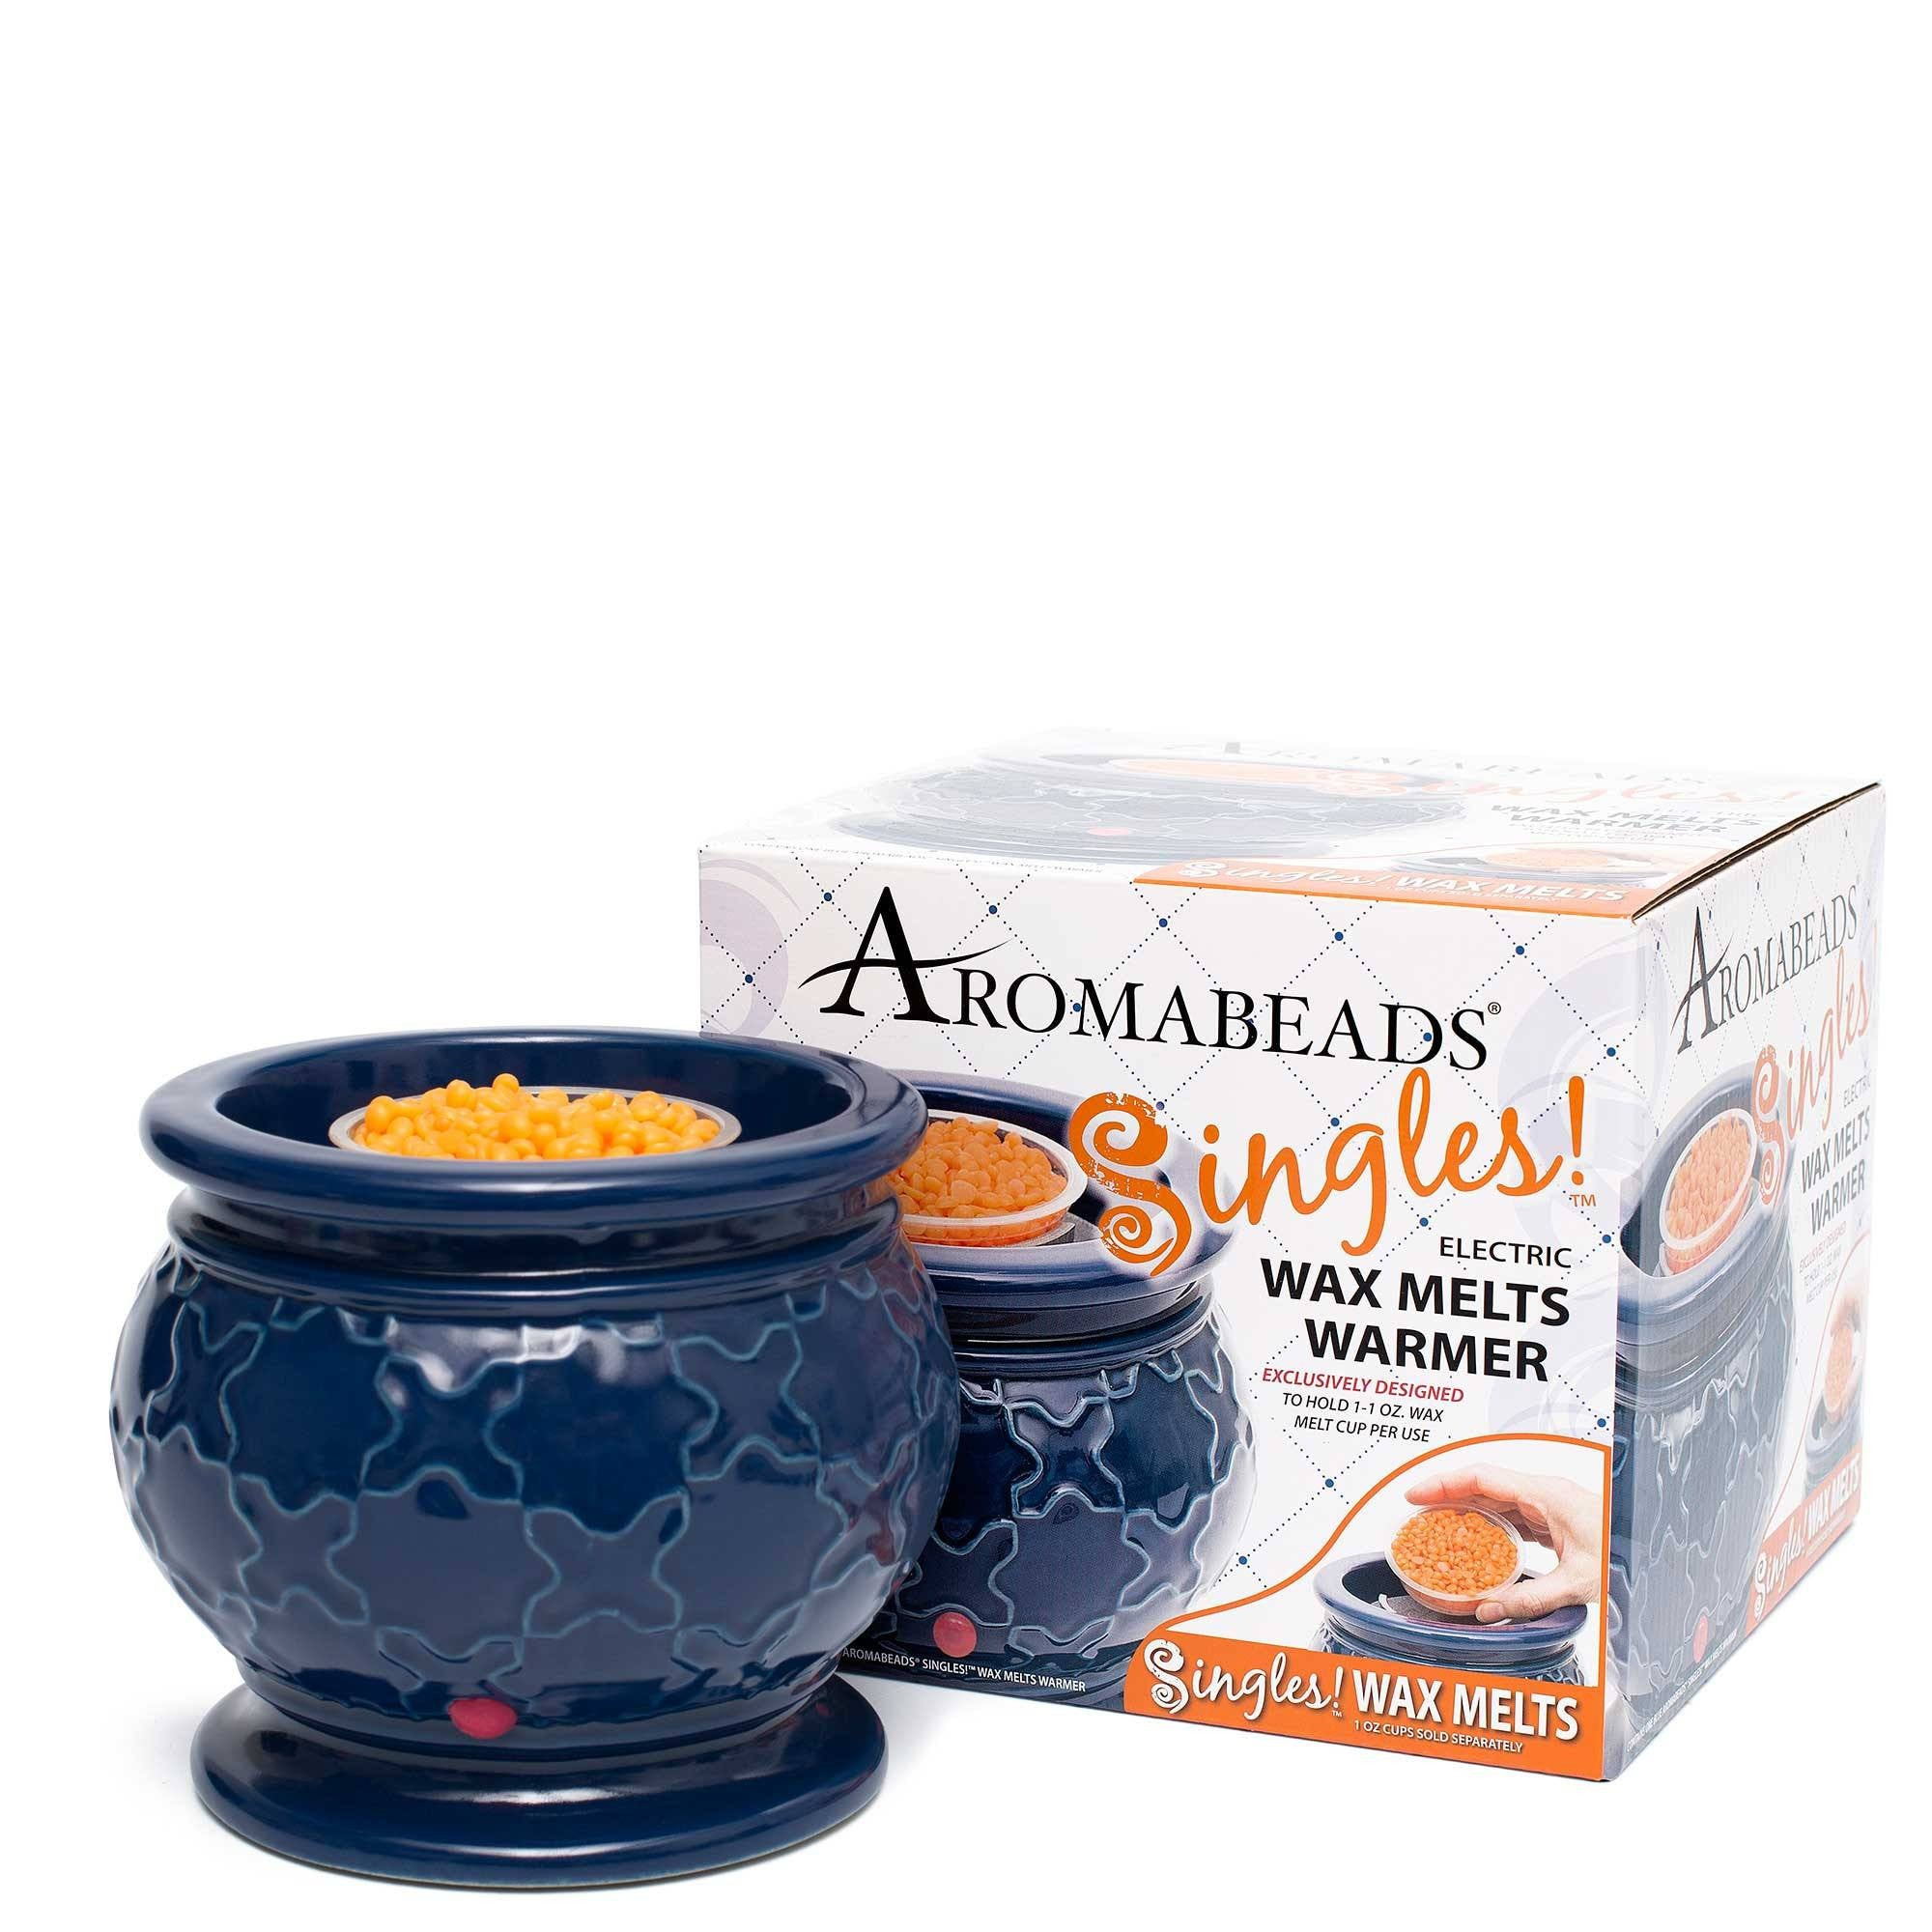 Aromabeads Singles Cranberry Mandarin Scented Wax Melts Melts Candlemart.com $ 1.49